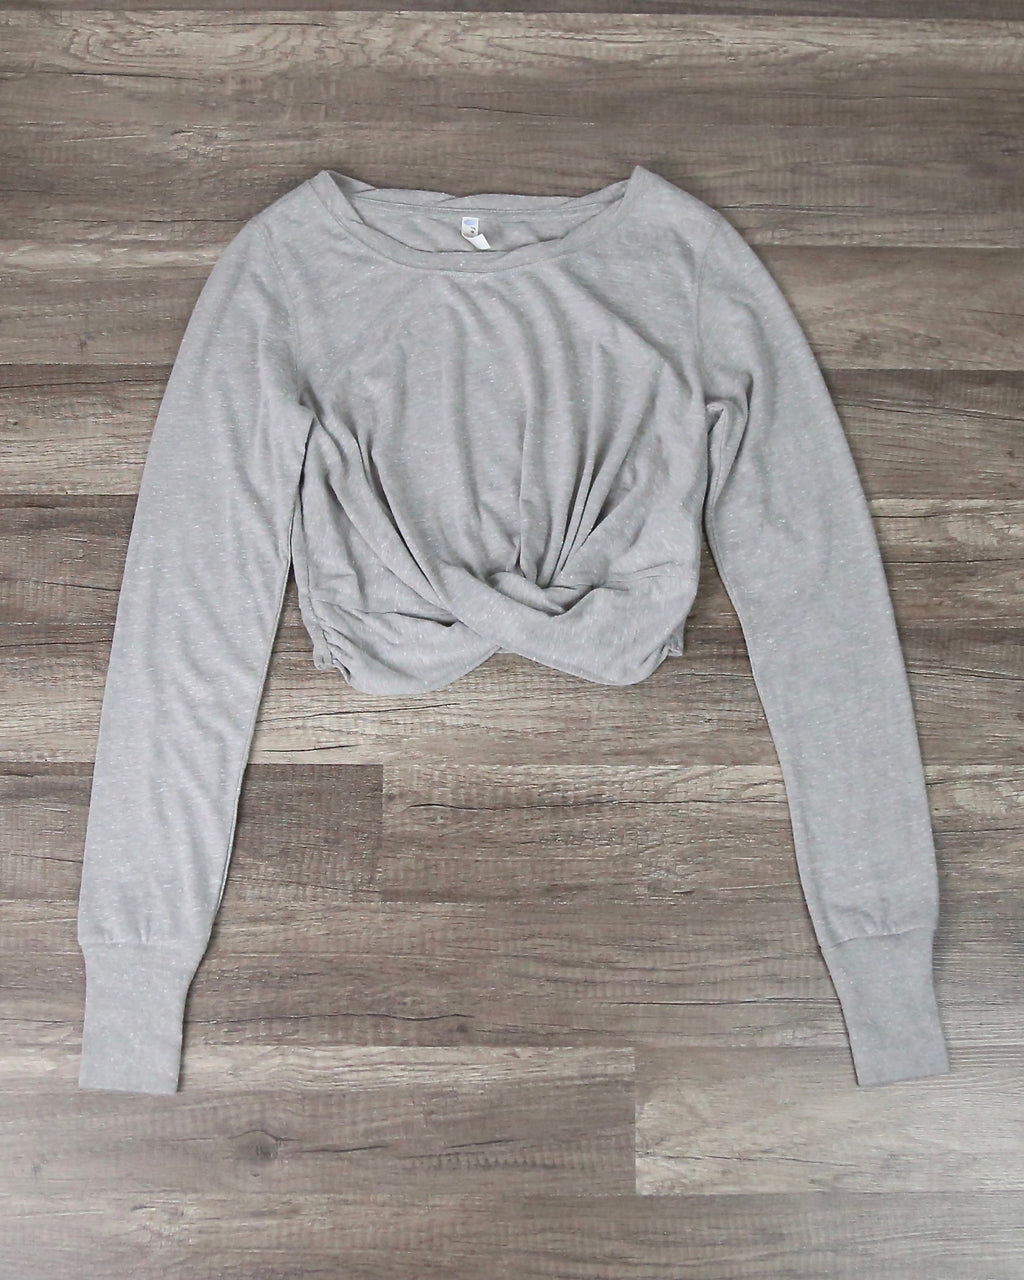 Free People Movement - Undertow Long Sleeve T-shirt in Heather Grey